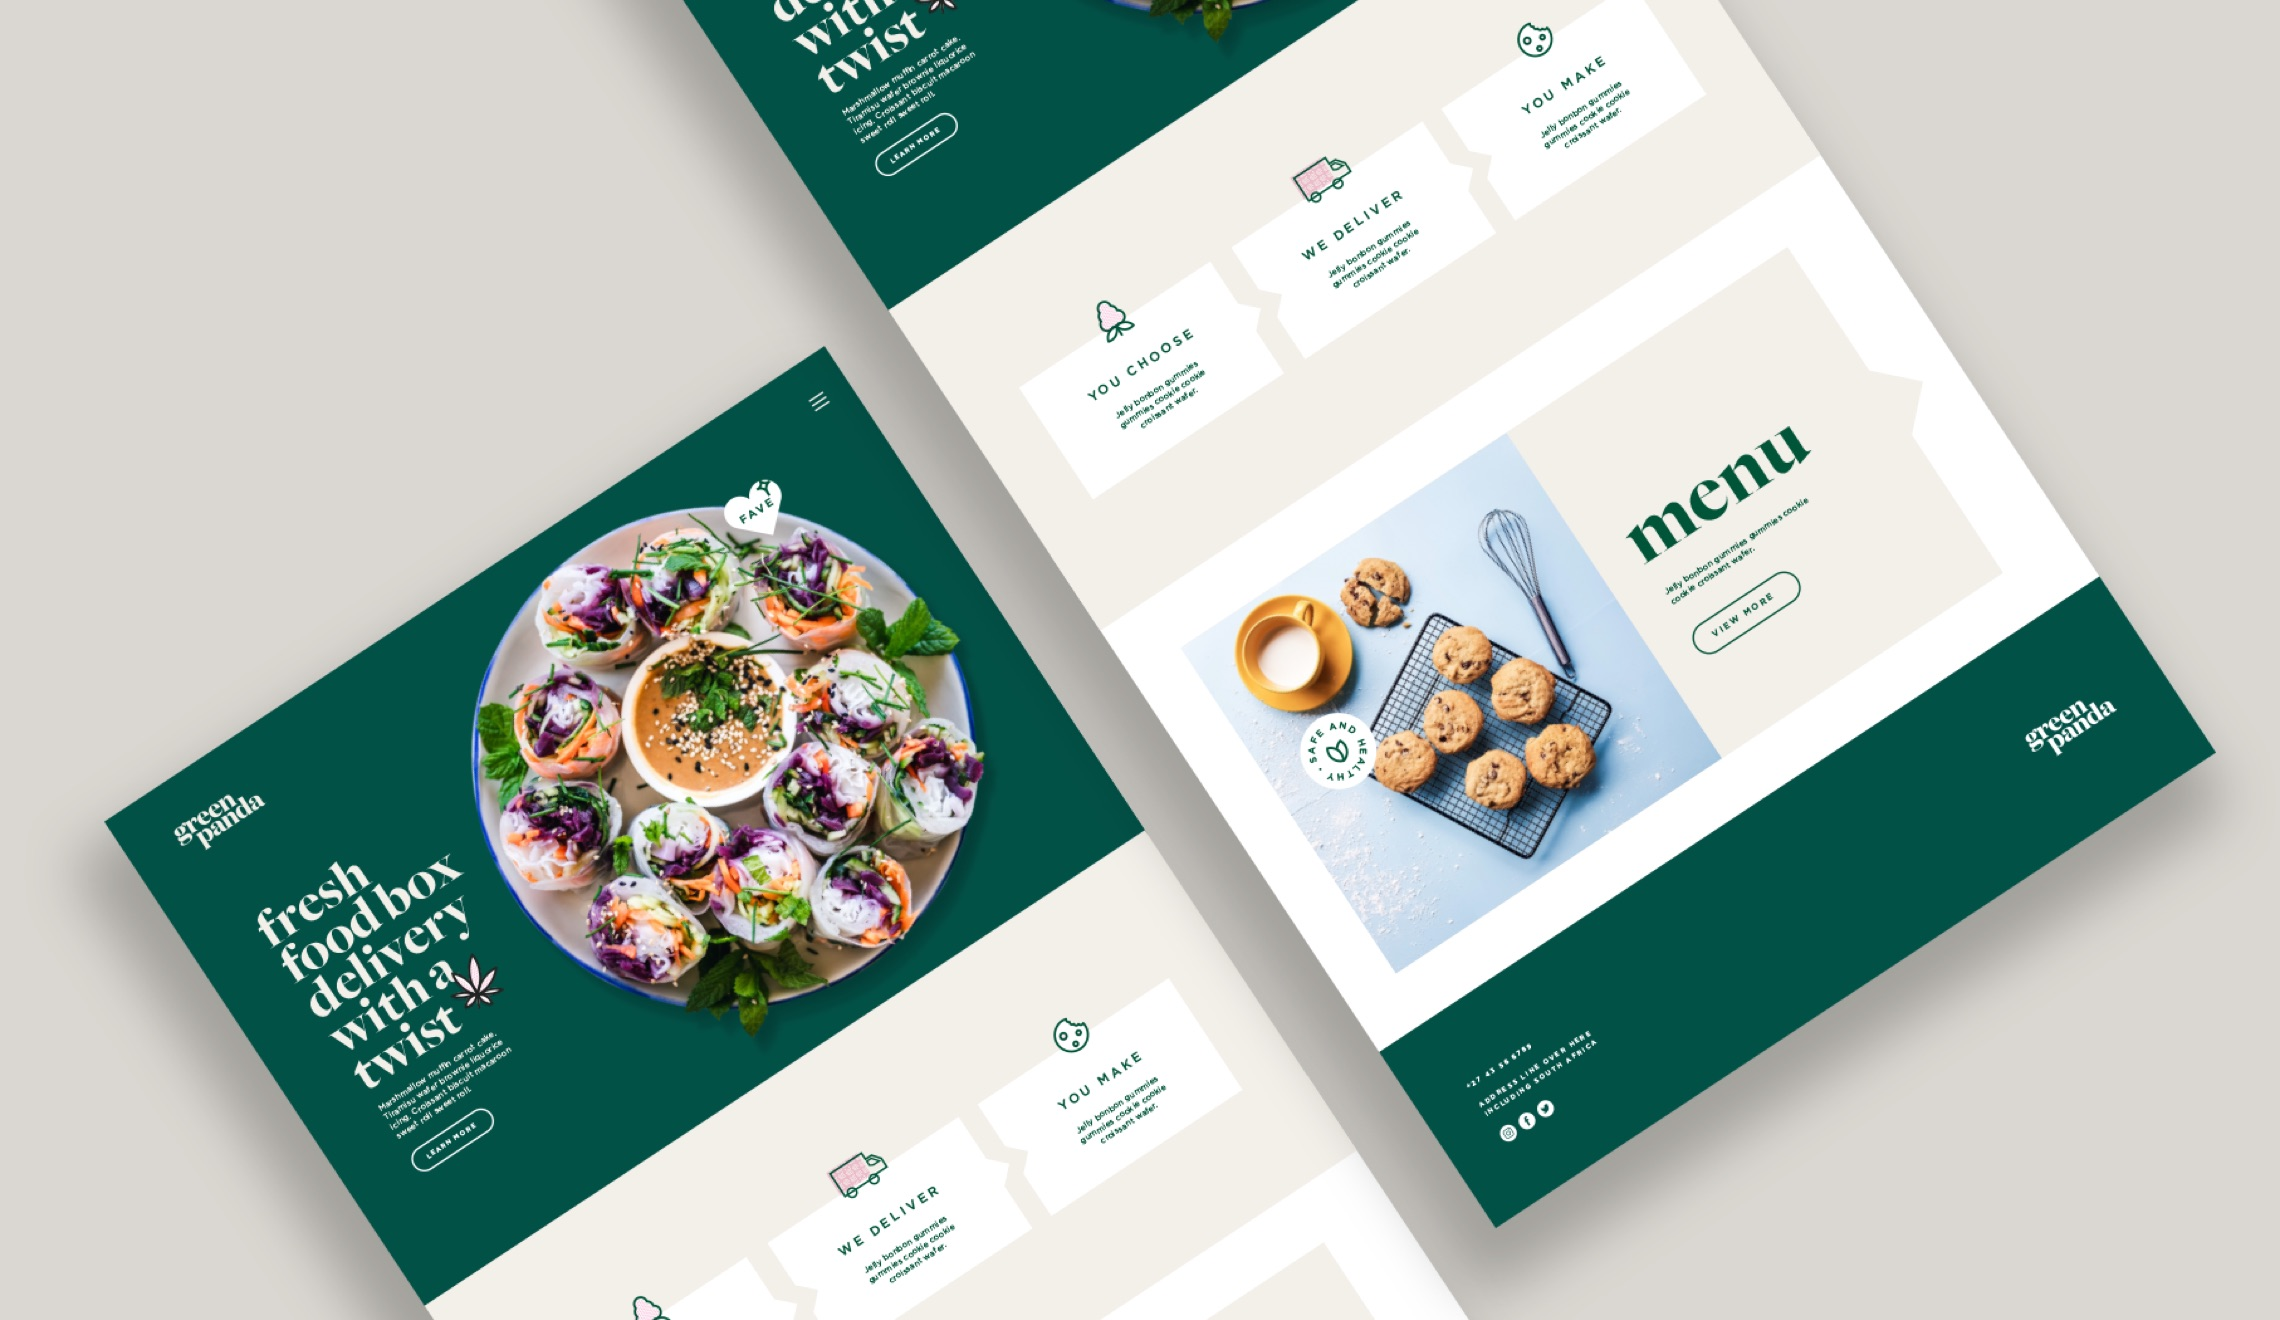 Green Panda Edibles Delivery Website Mockup